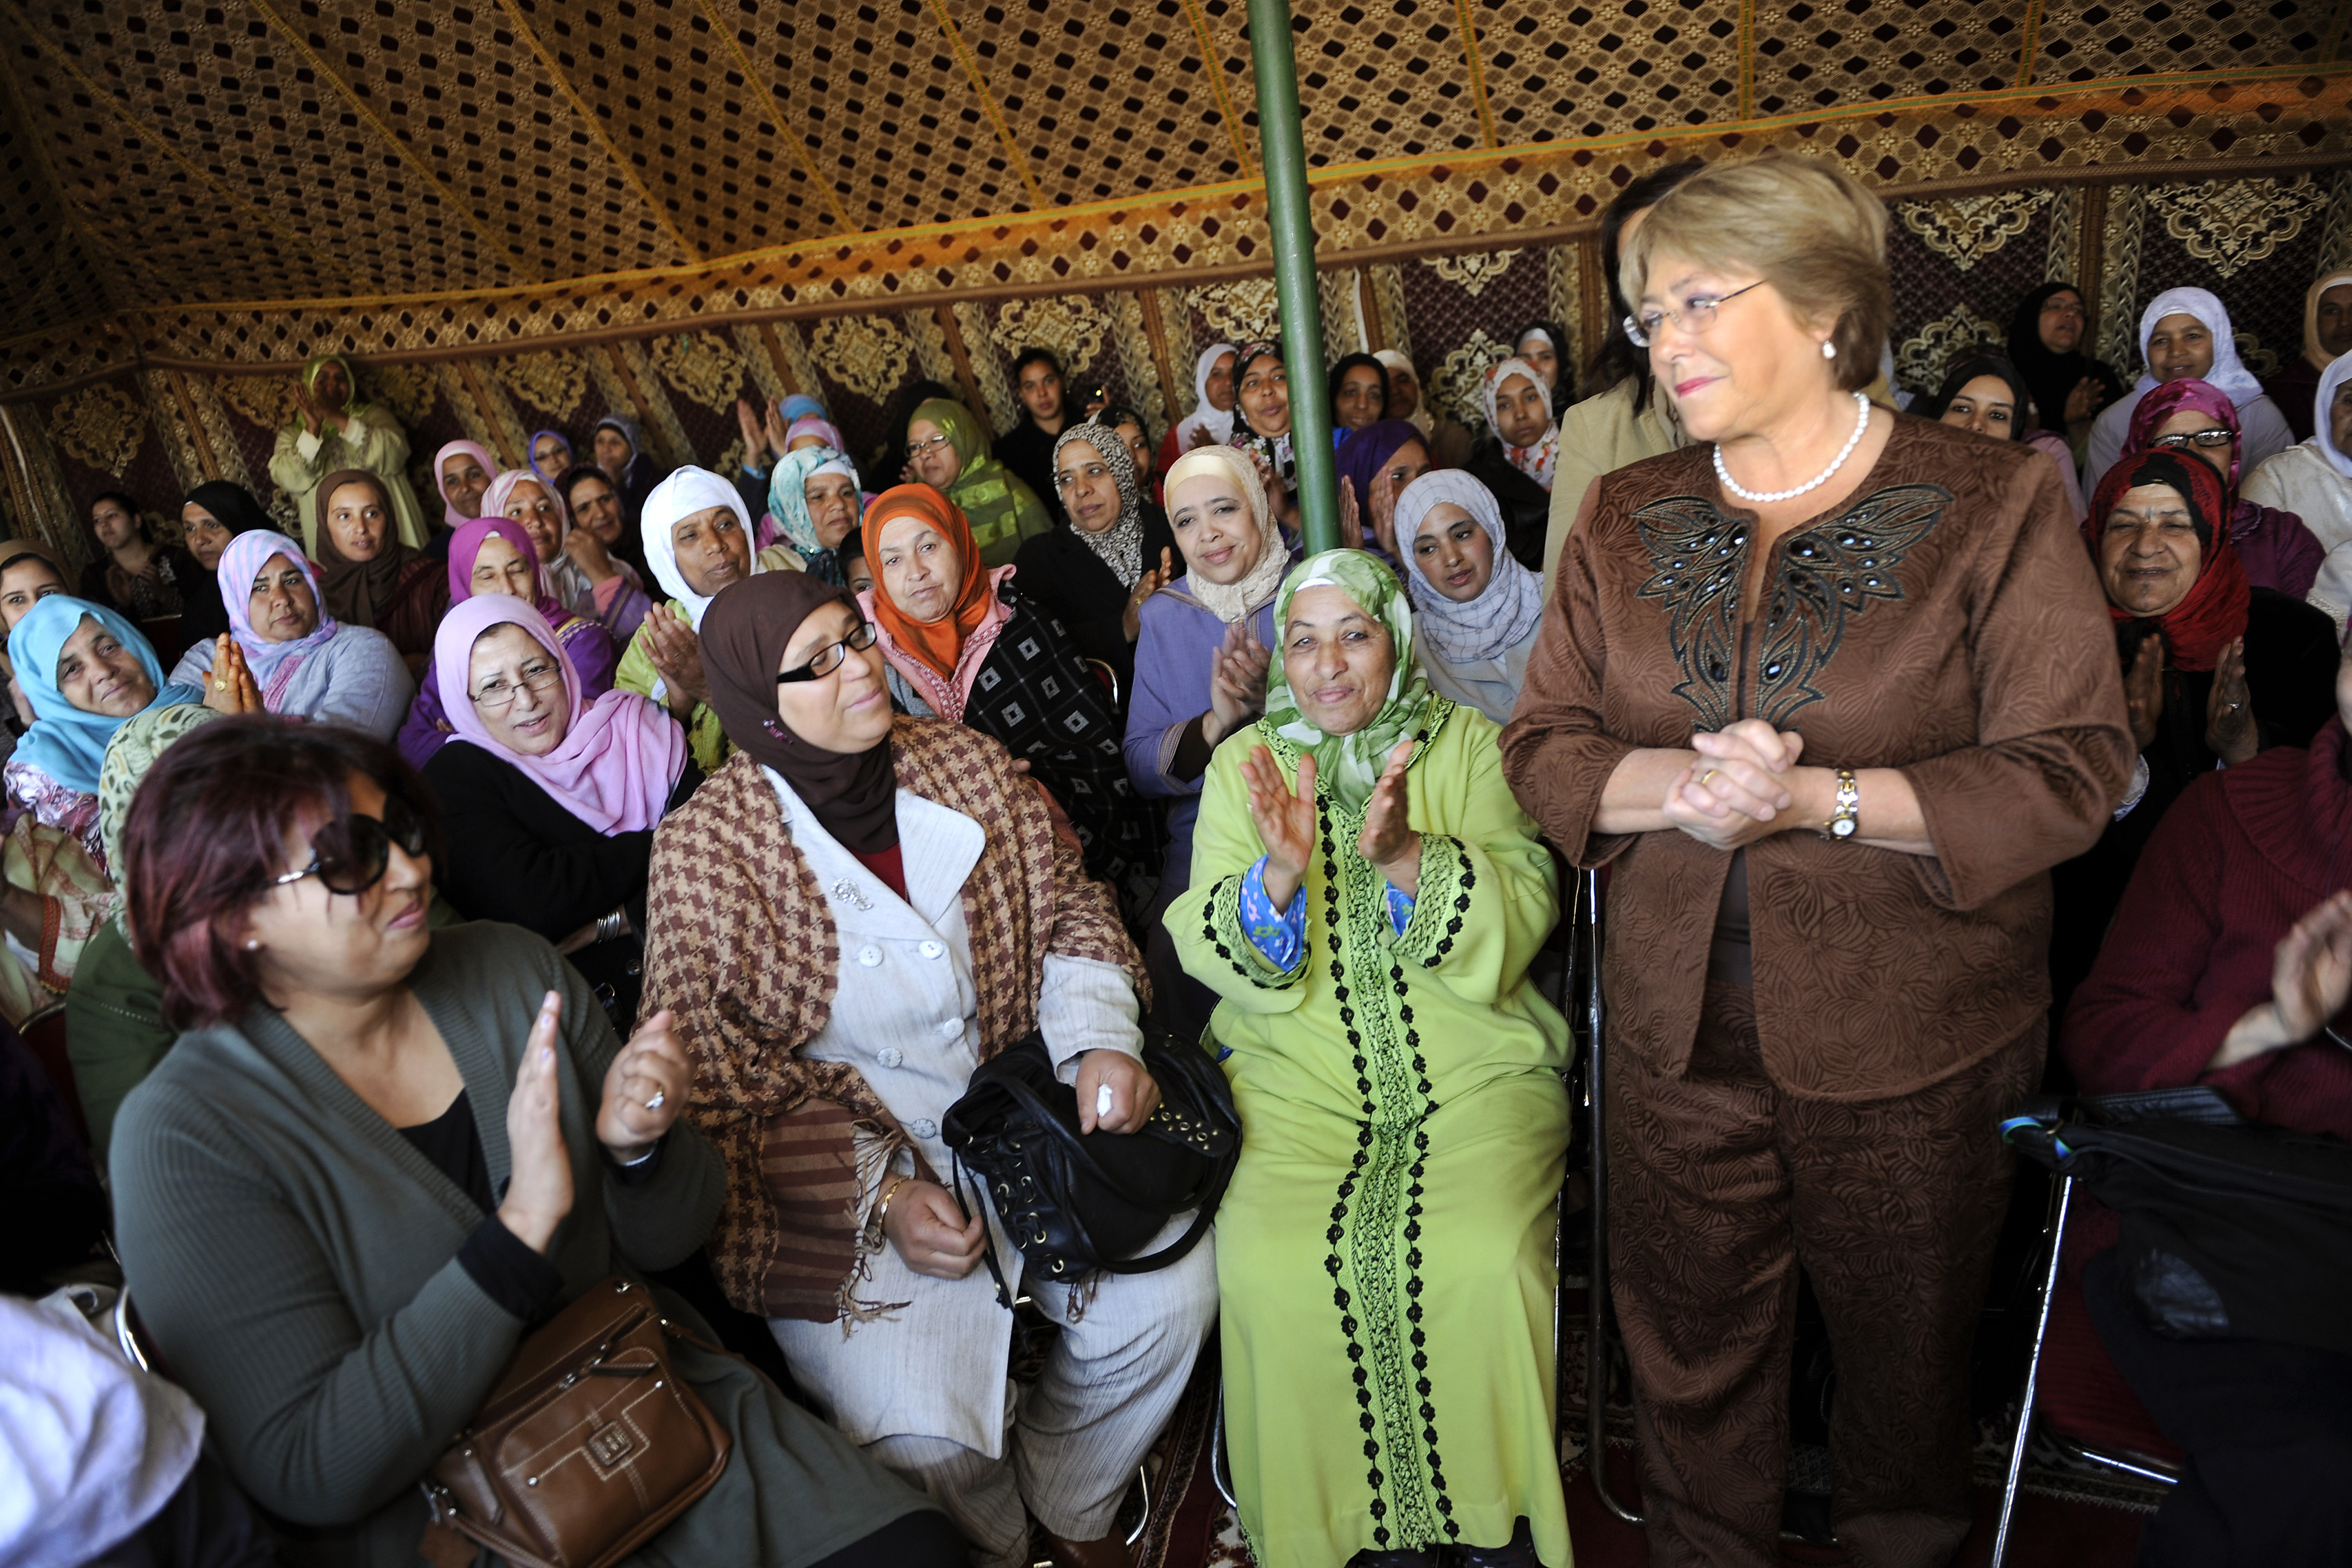 Michelle Bachelet meets with rural women of the Soulalyates ethnic group in Morocco